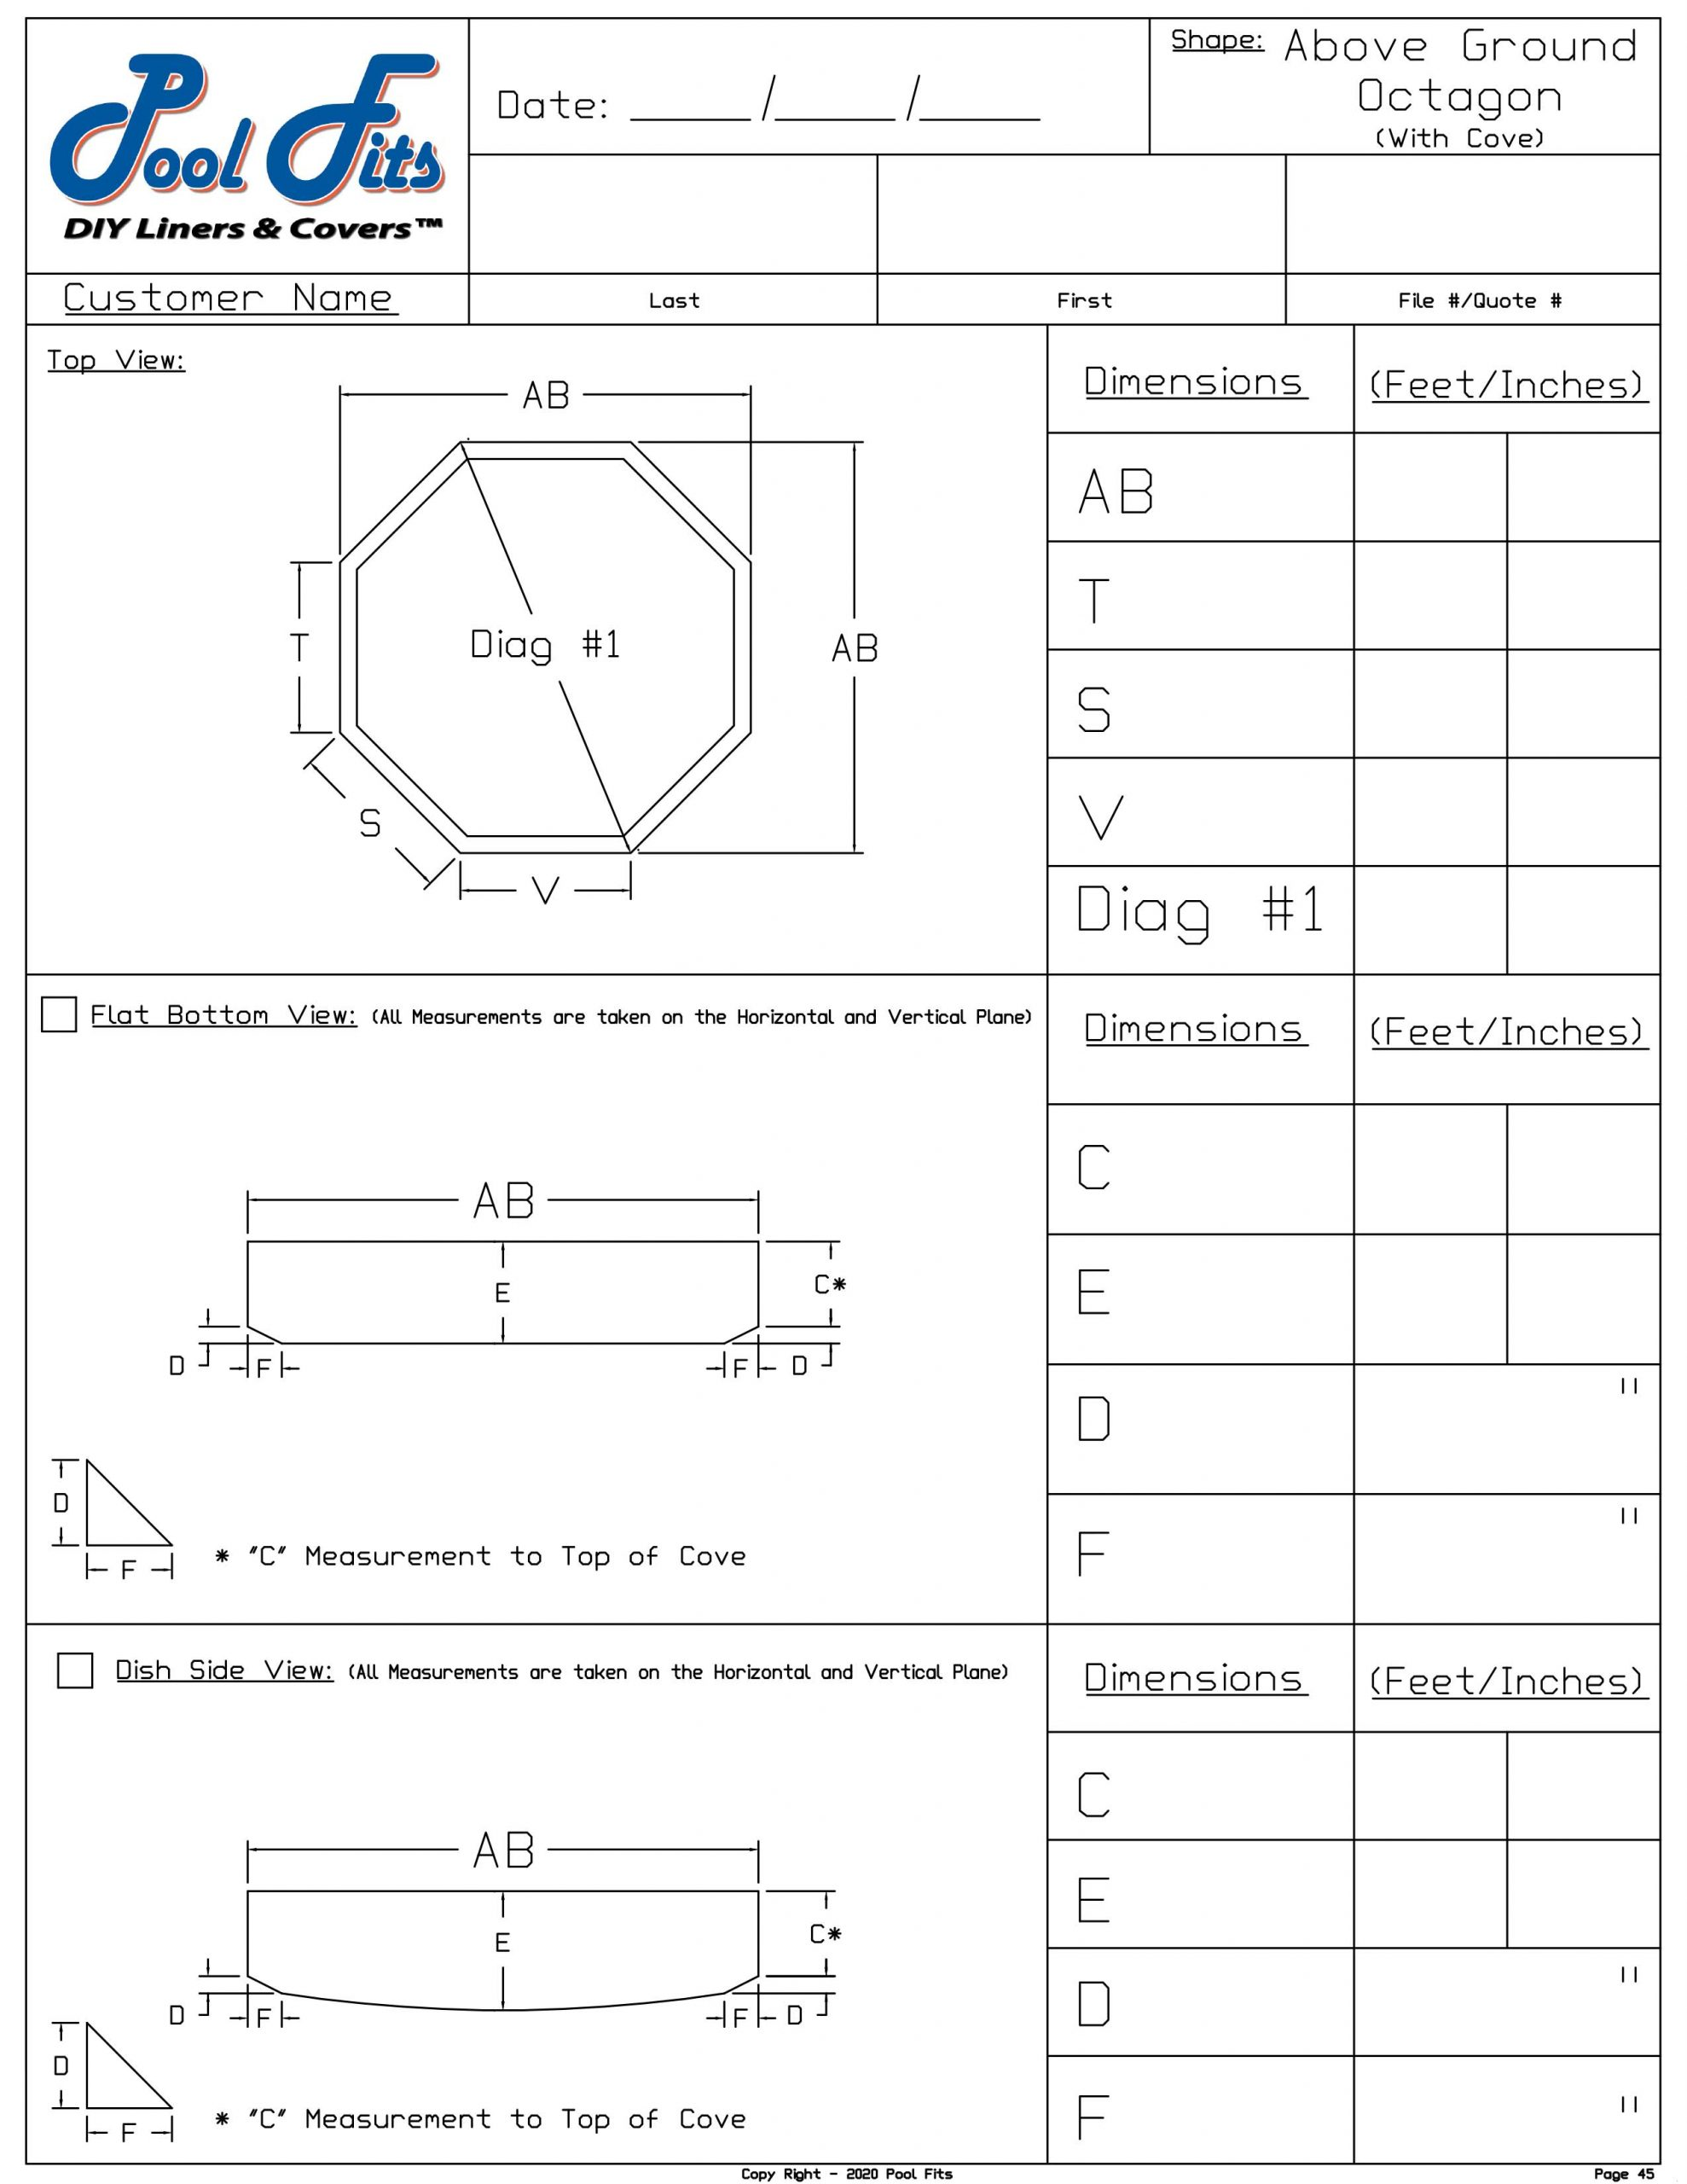 Above Ground Octagon with Cover Measurement Sheet